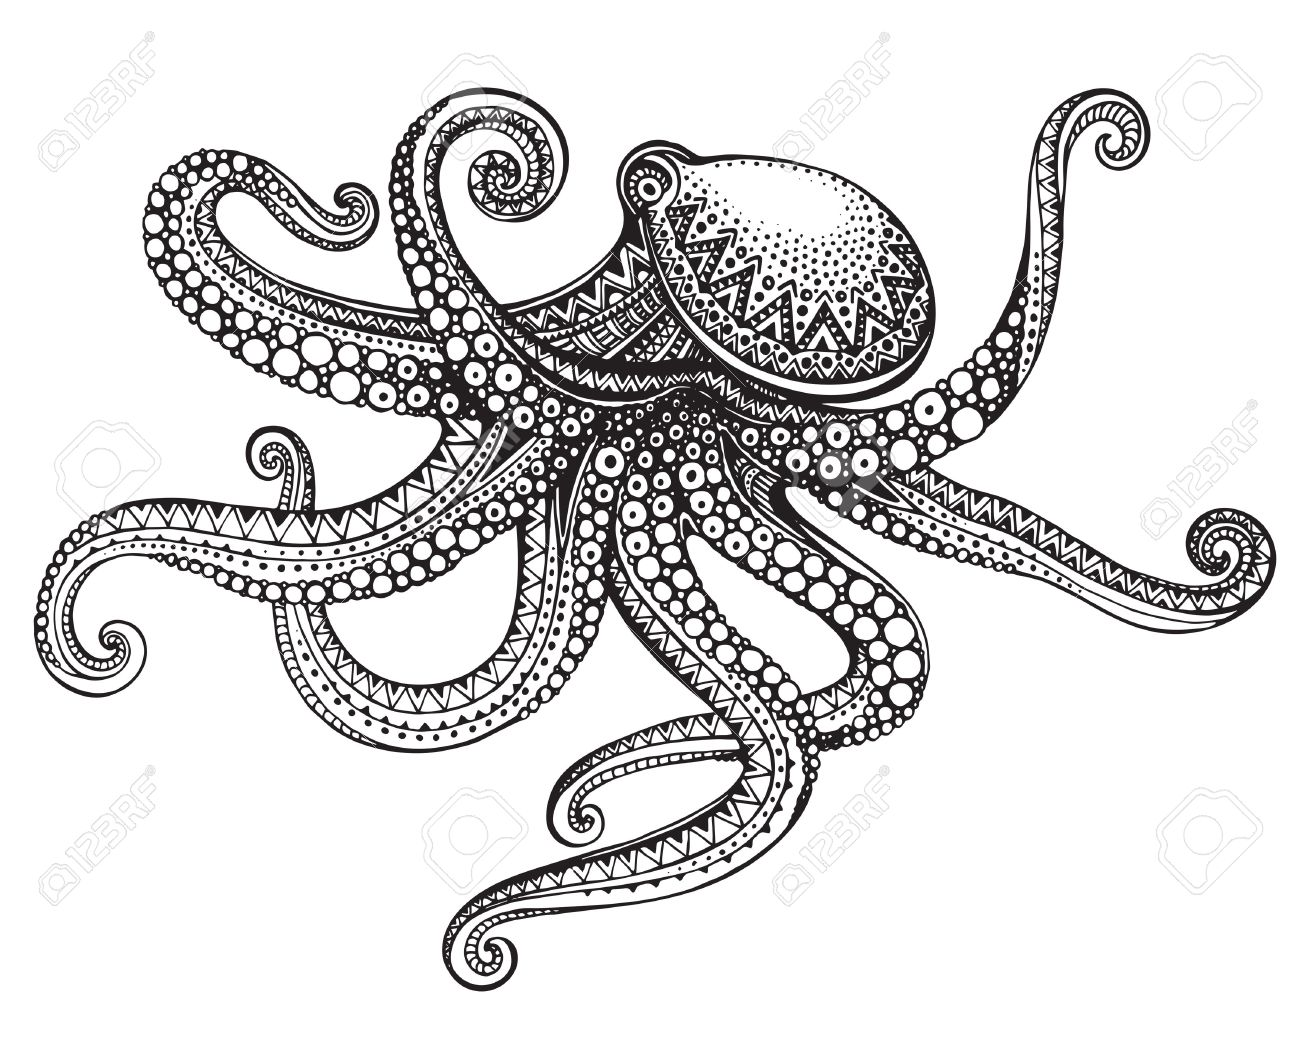 Hand Drawn Octopus In Graphic Ornate Style Vector Illustration